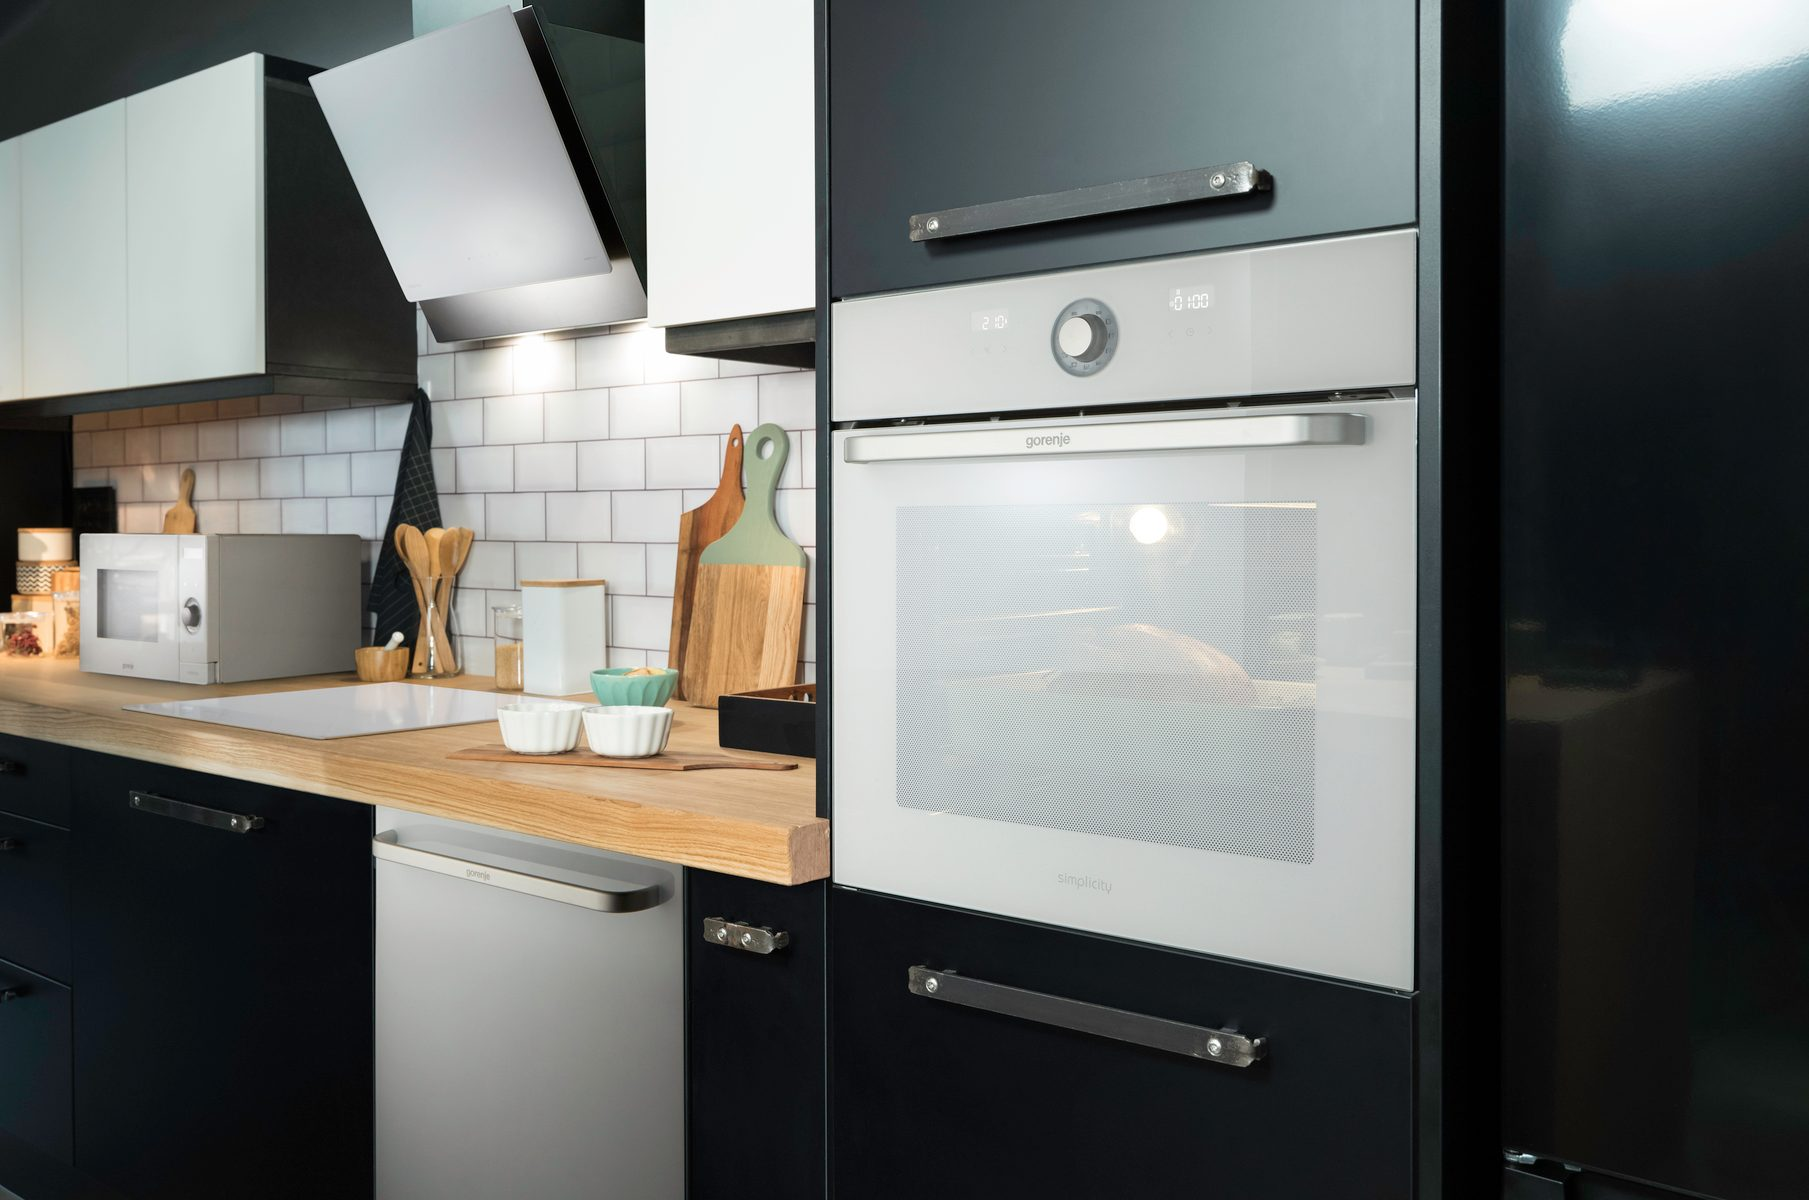 Gorenje Simplicity Gorenje International